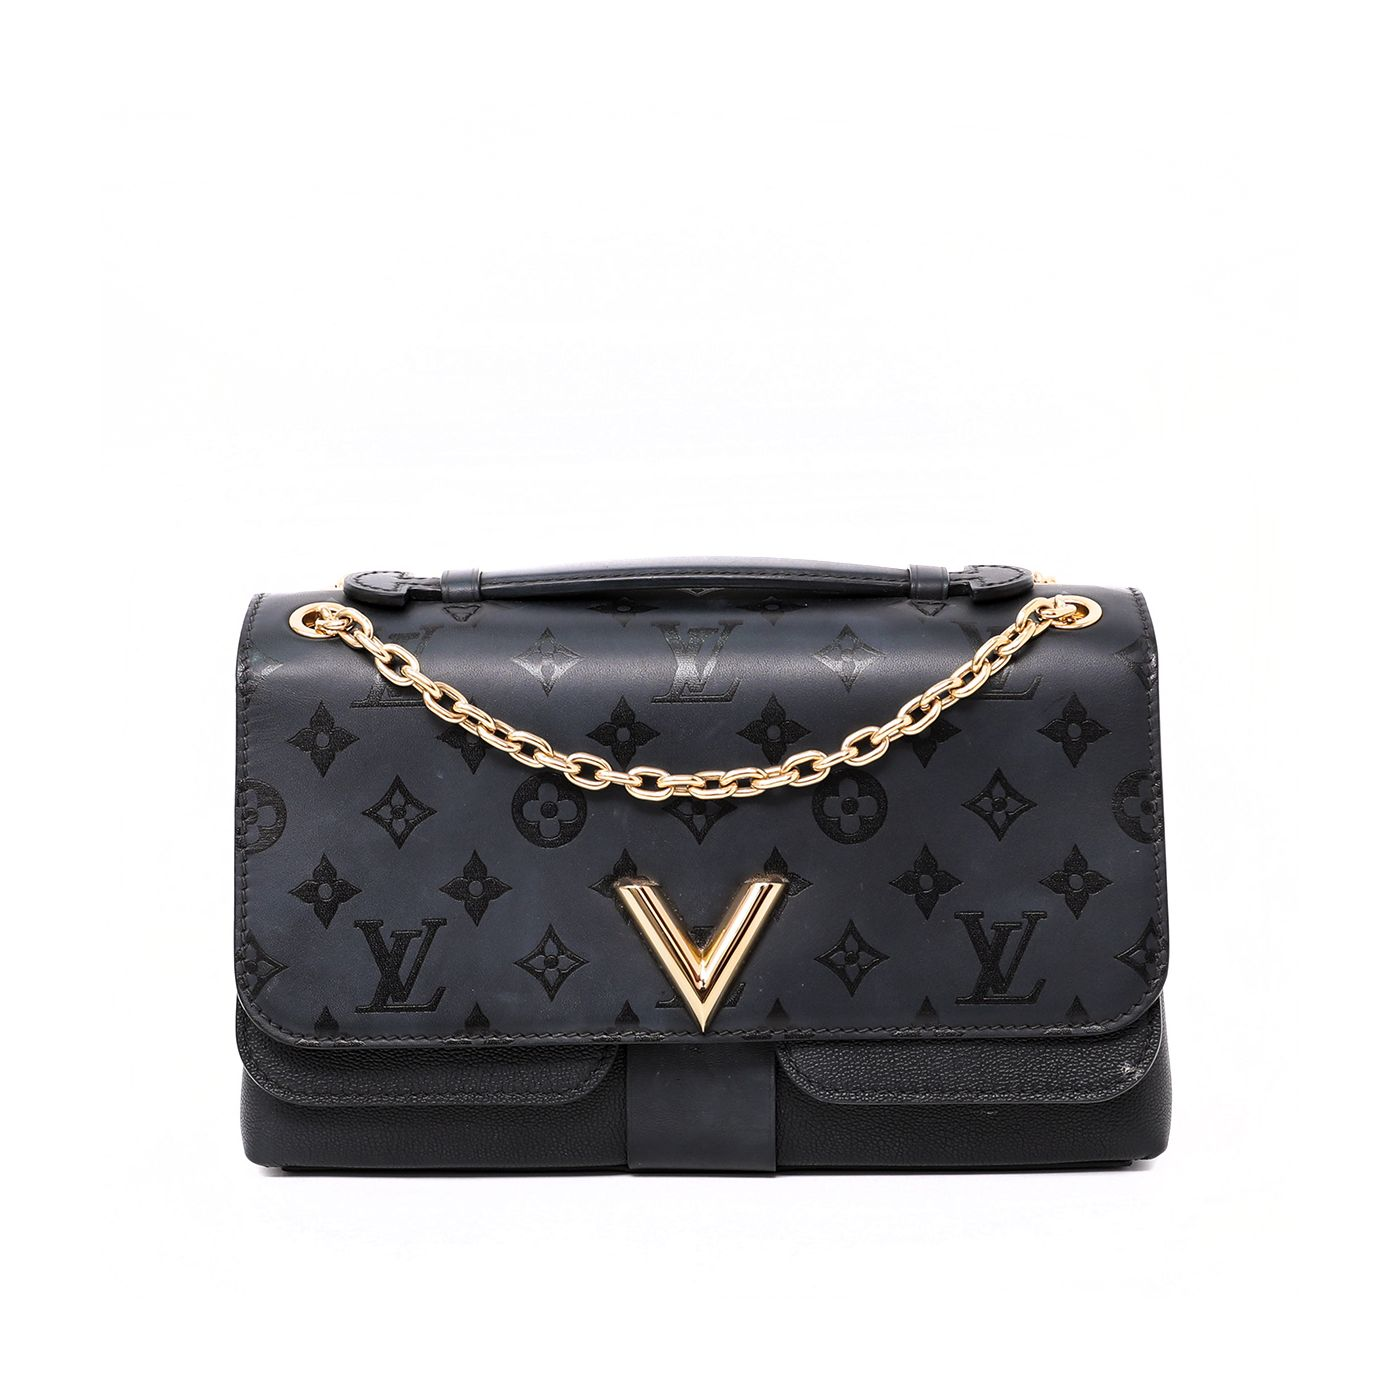 Louis Vuitton Black Monogram Very Chain Bag